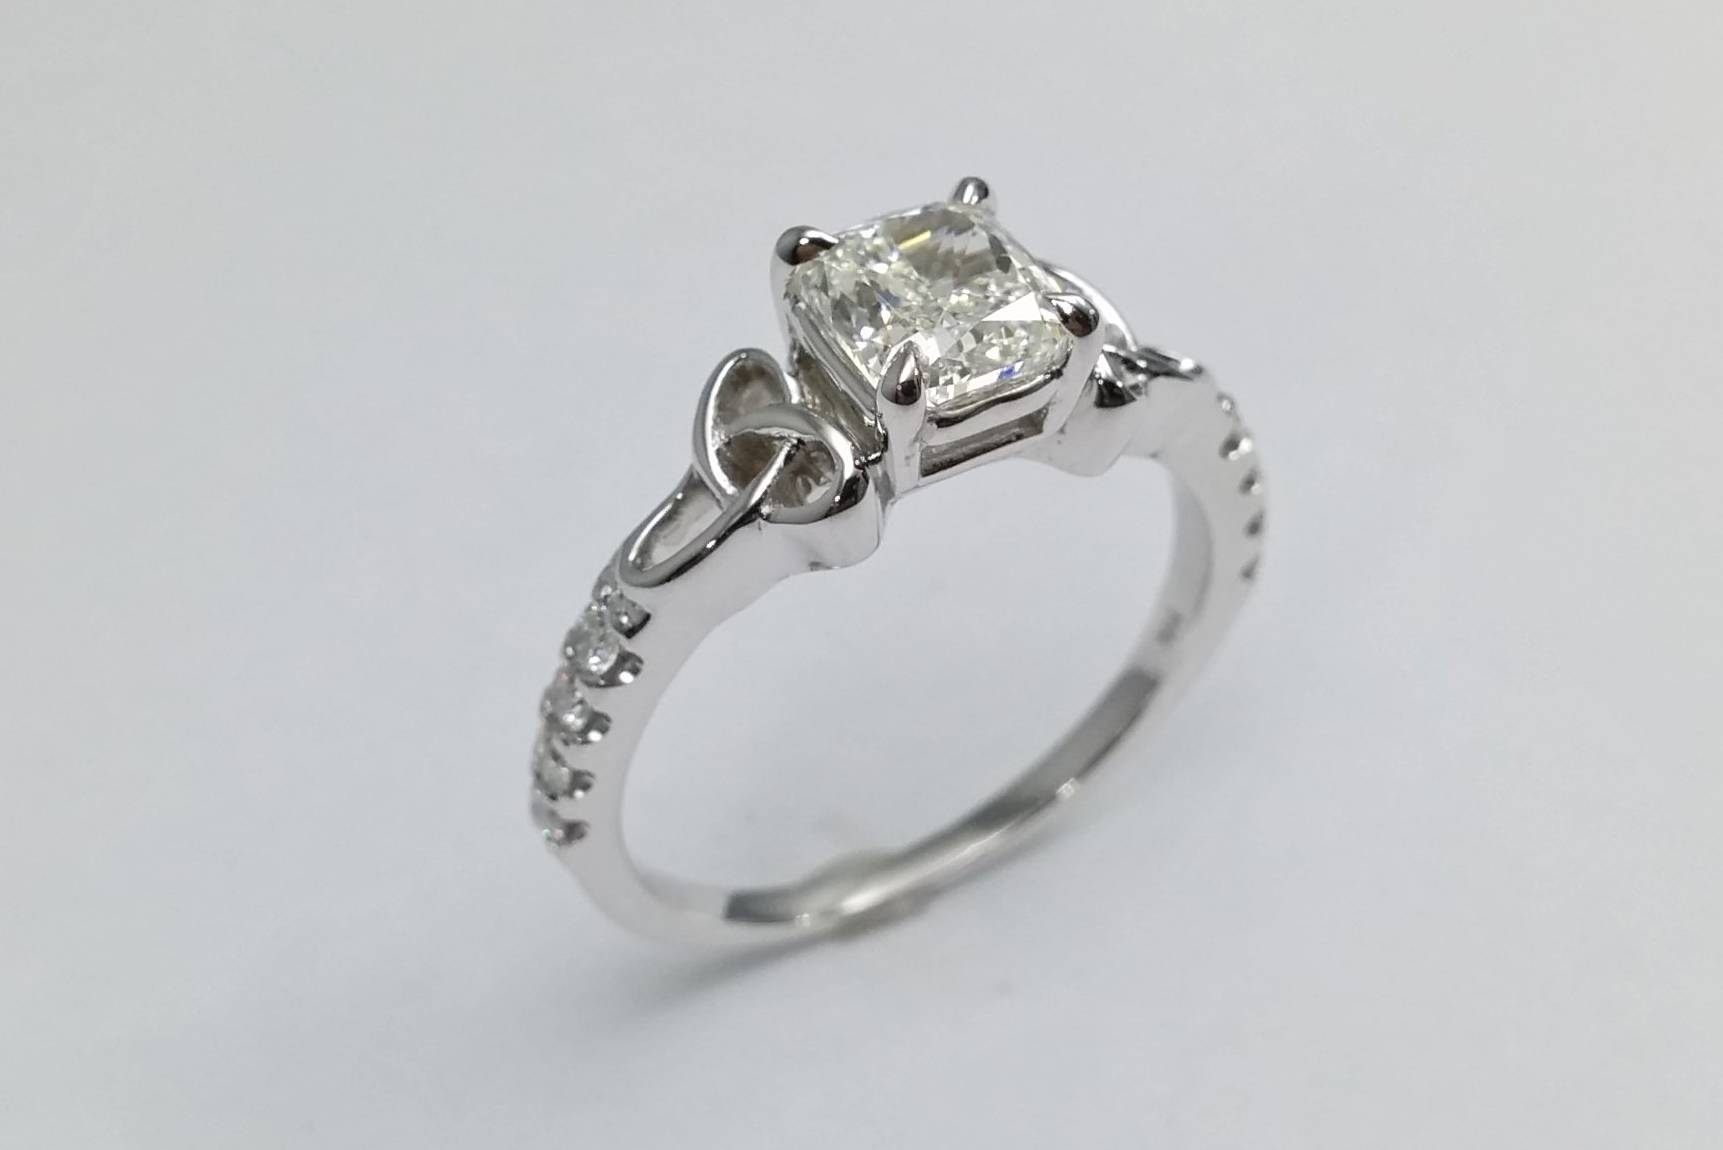 Celtic – Engagement Rings From Mdc Diamonds Nyc Inside Celtic Engagement Rings Canada (View 6 of 20)